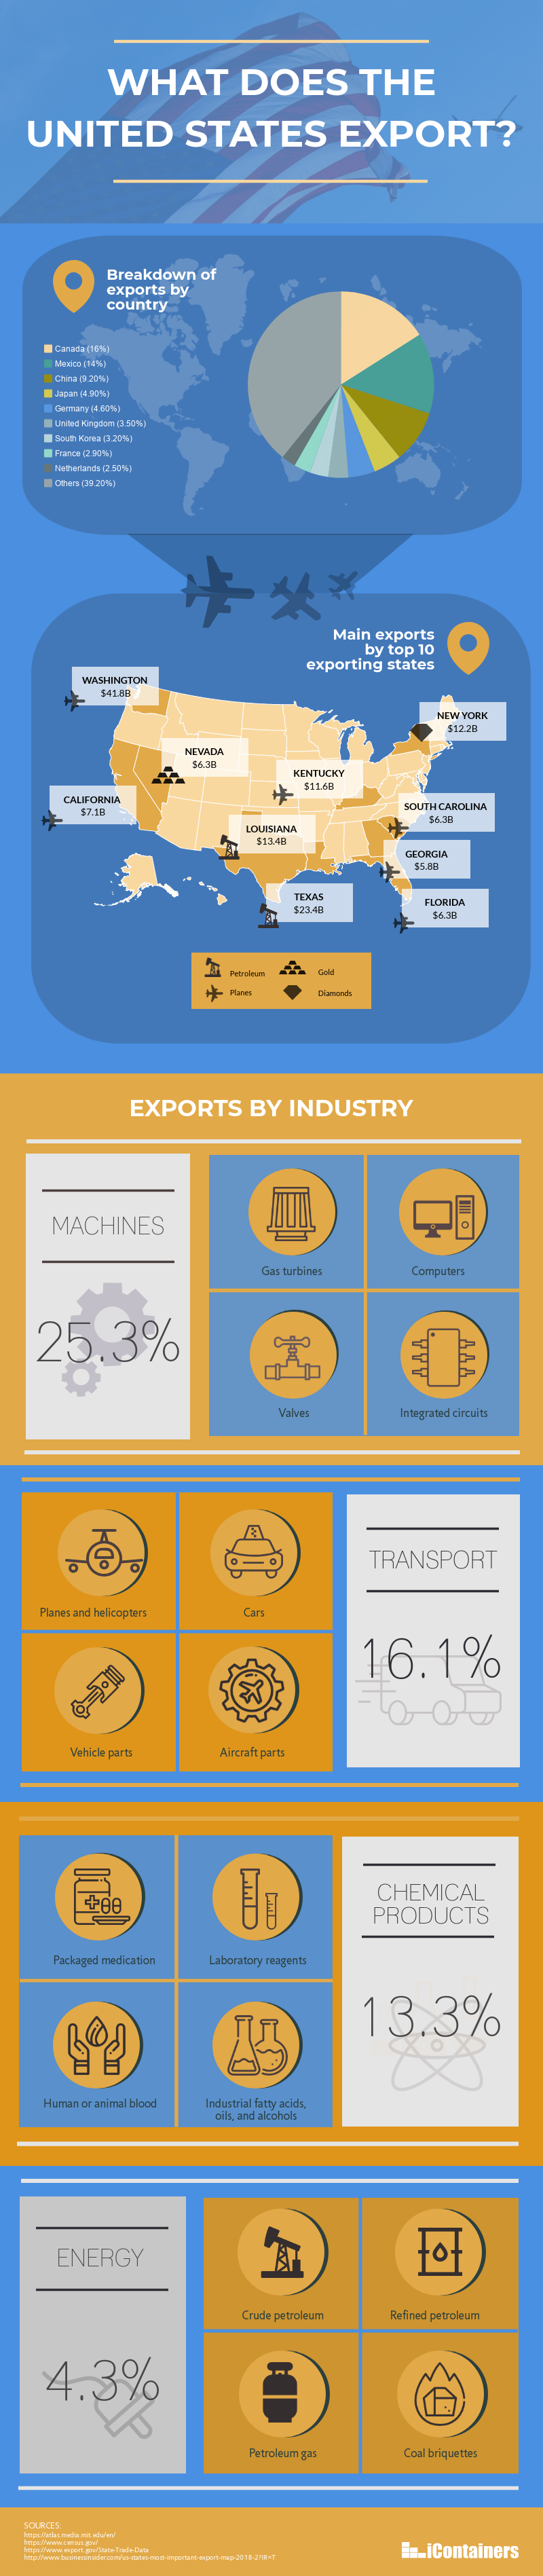 US exports by state, industry, destination country infographic